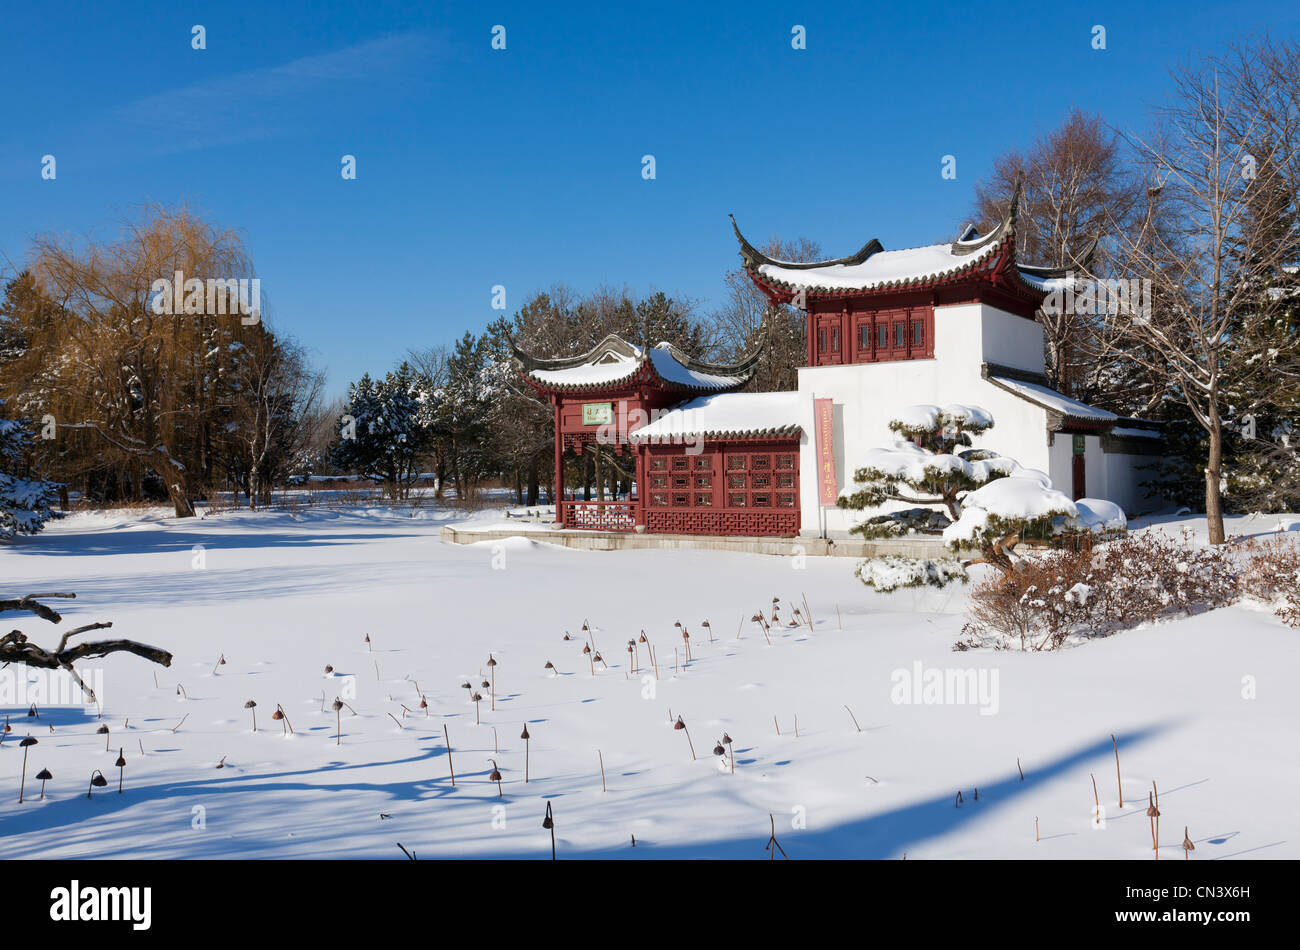 Canada, Quebec province, Montreal, the Botanical Garden in the snow, the Chinese garden and pagoda - Stock Image